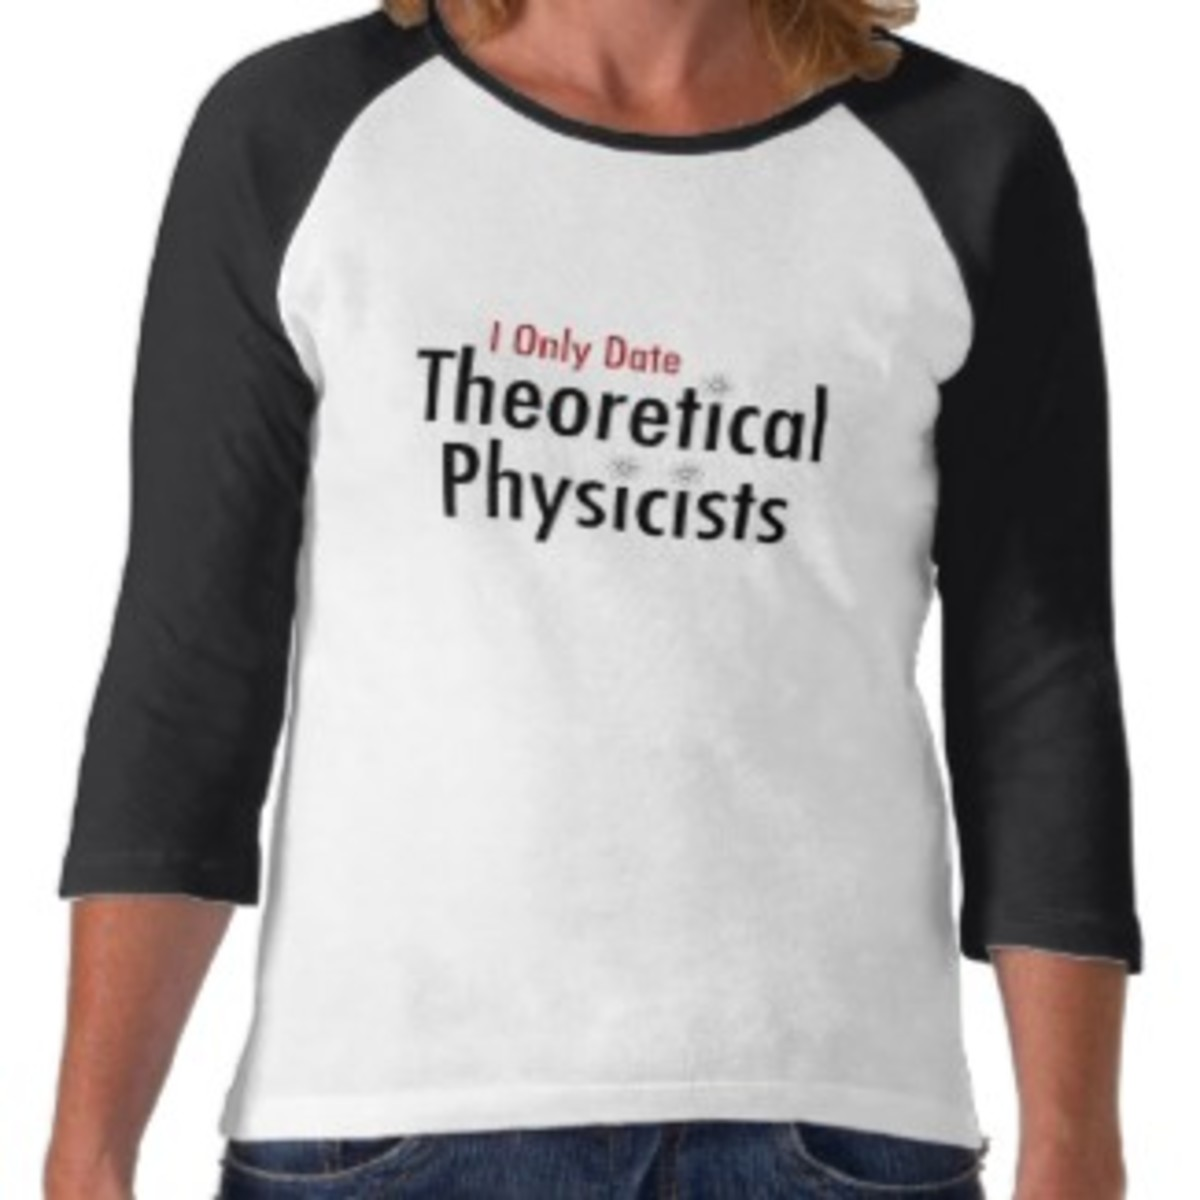 I date only theoretical scientists